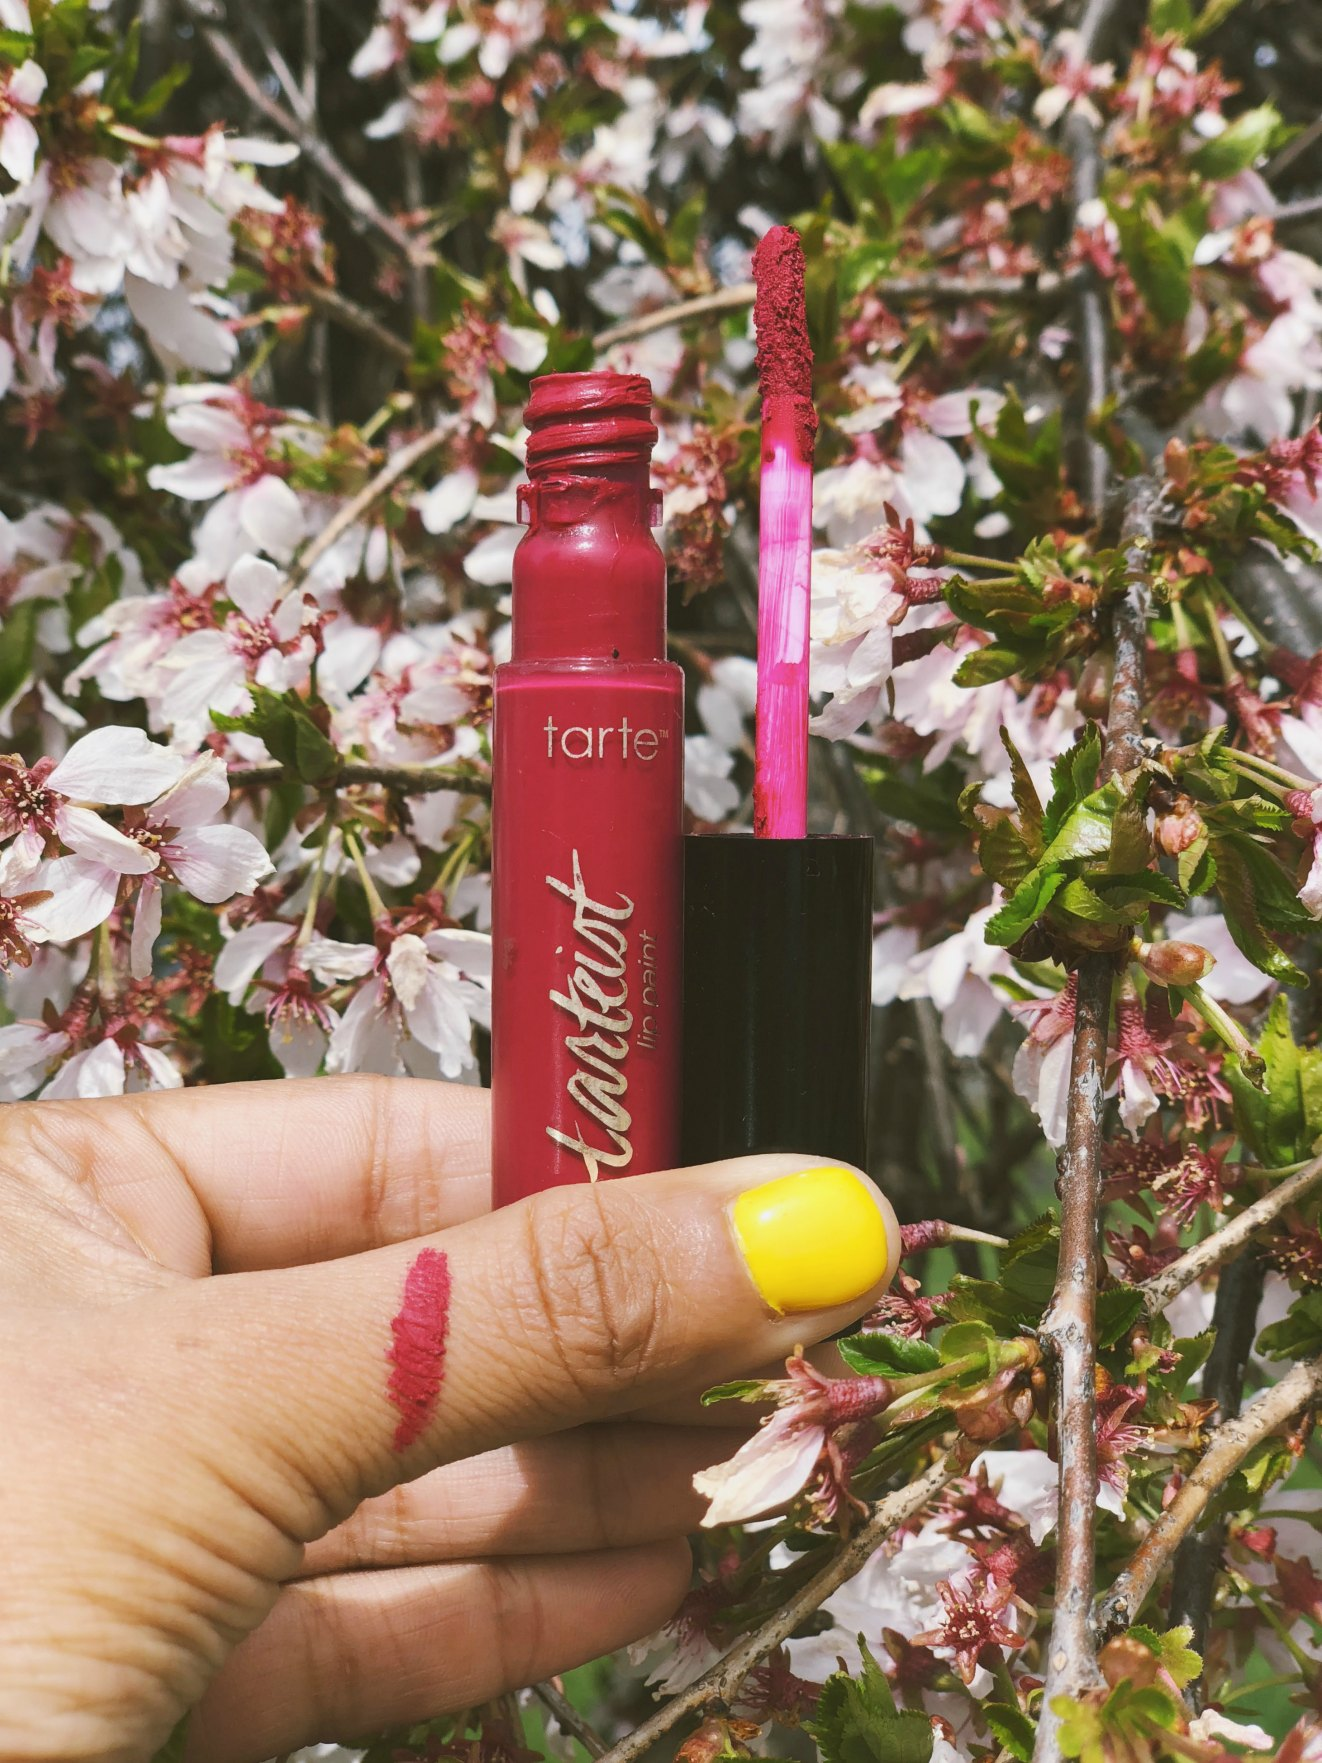 Lifestyle blog dreaming loud sharing Sephora Natural Beauty favorites- tarte Tarteist Creamy Matte Lip Paint in Lovespell - Cruelty Free Beauty Products From Sephora featured by natural beauty blogger, Dreaming Loud